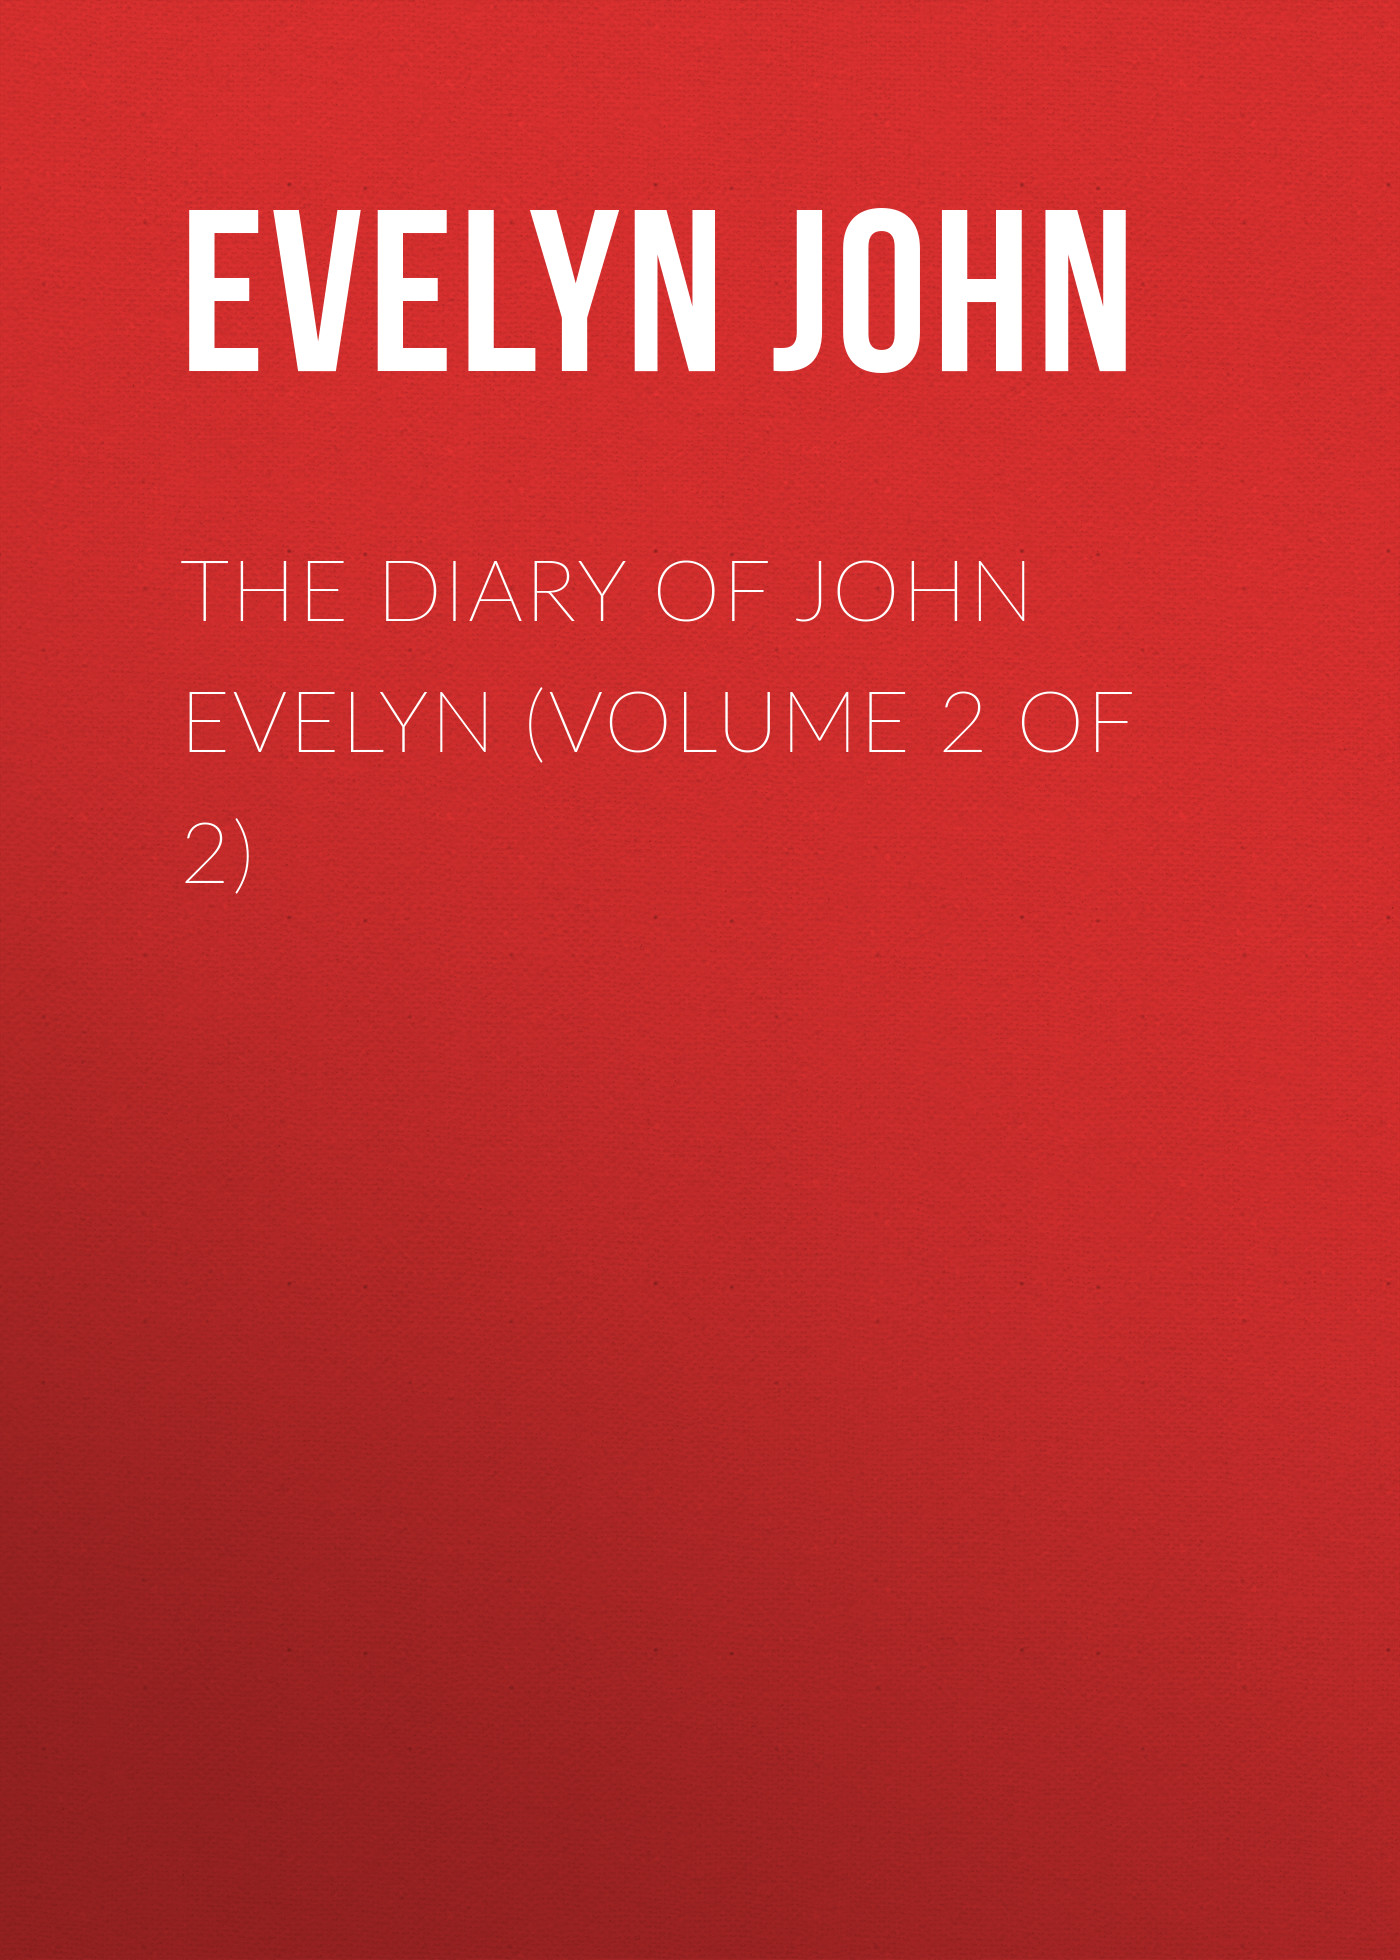 Evelyn John The Diary of John Evelyn (Volume 2 of 2) 2 rev 30 throwback 2 john wall jersey